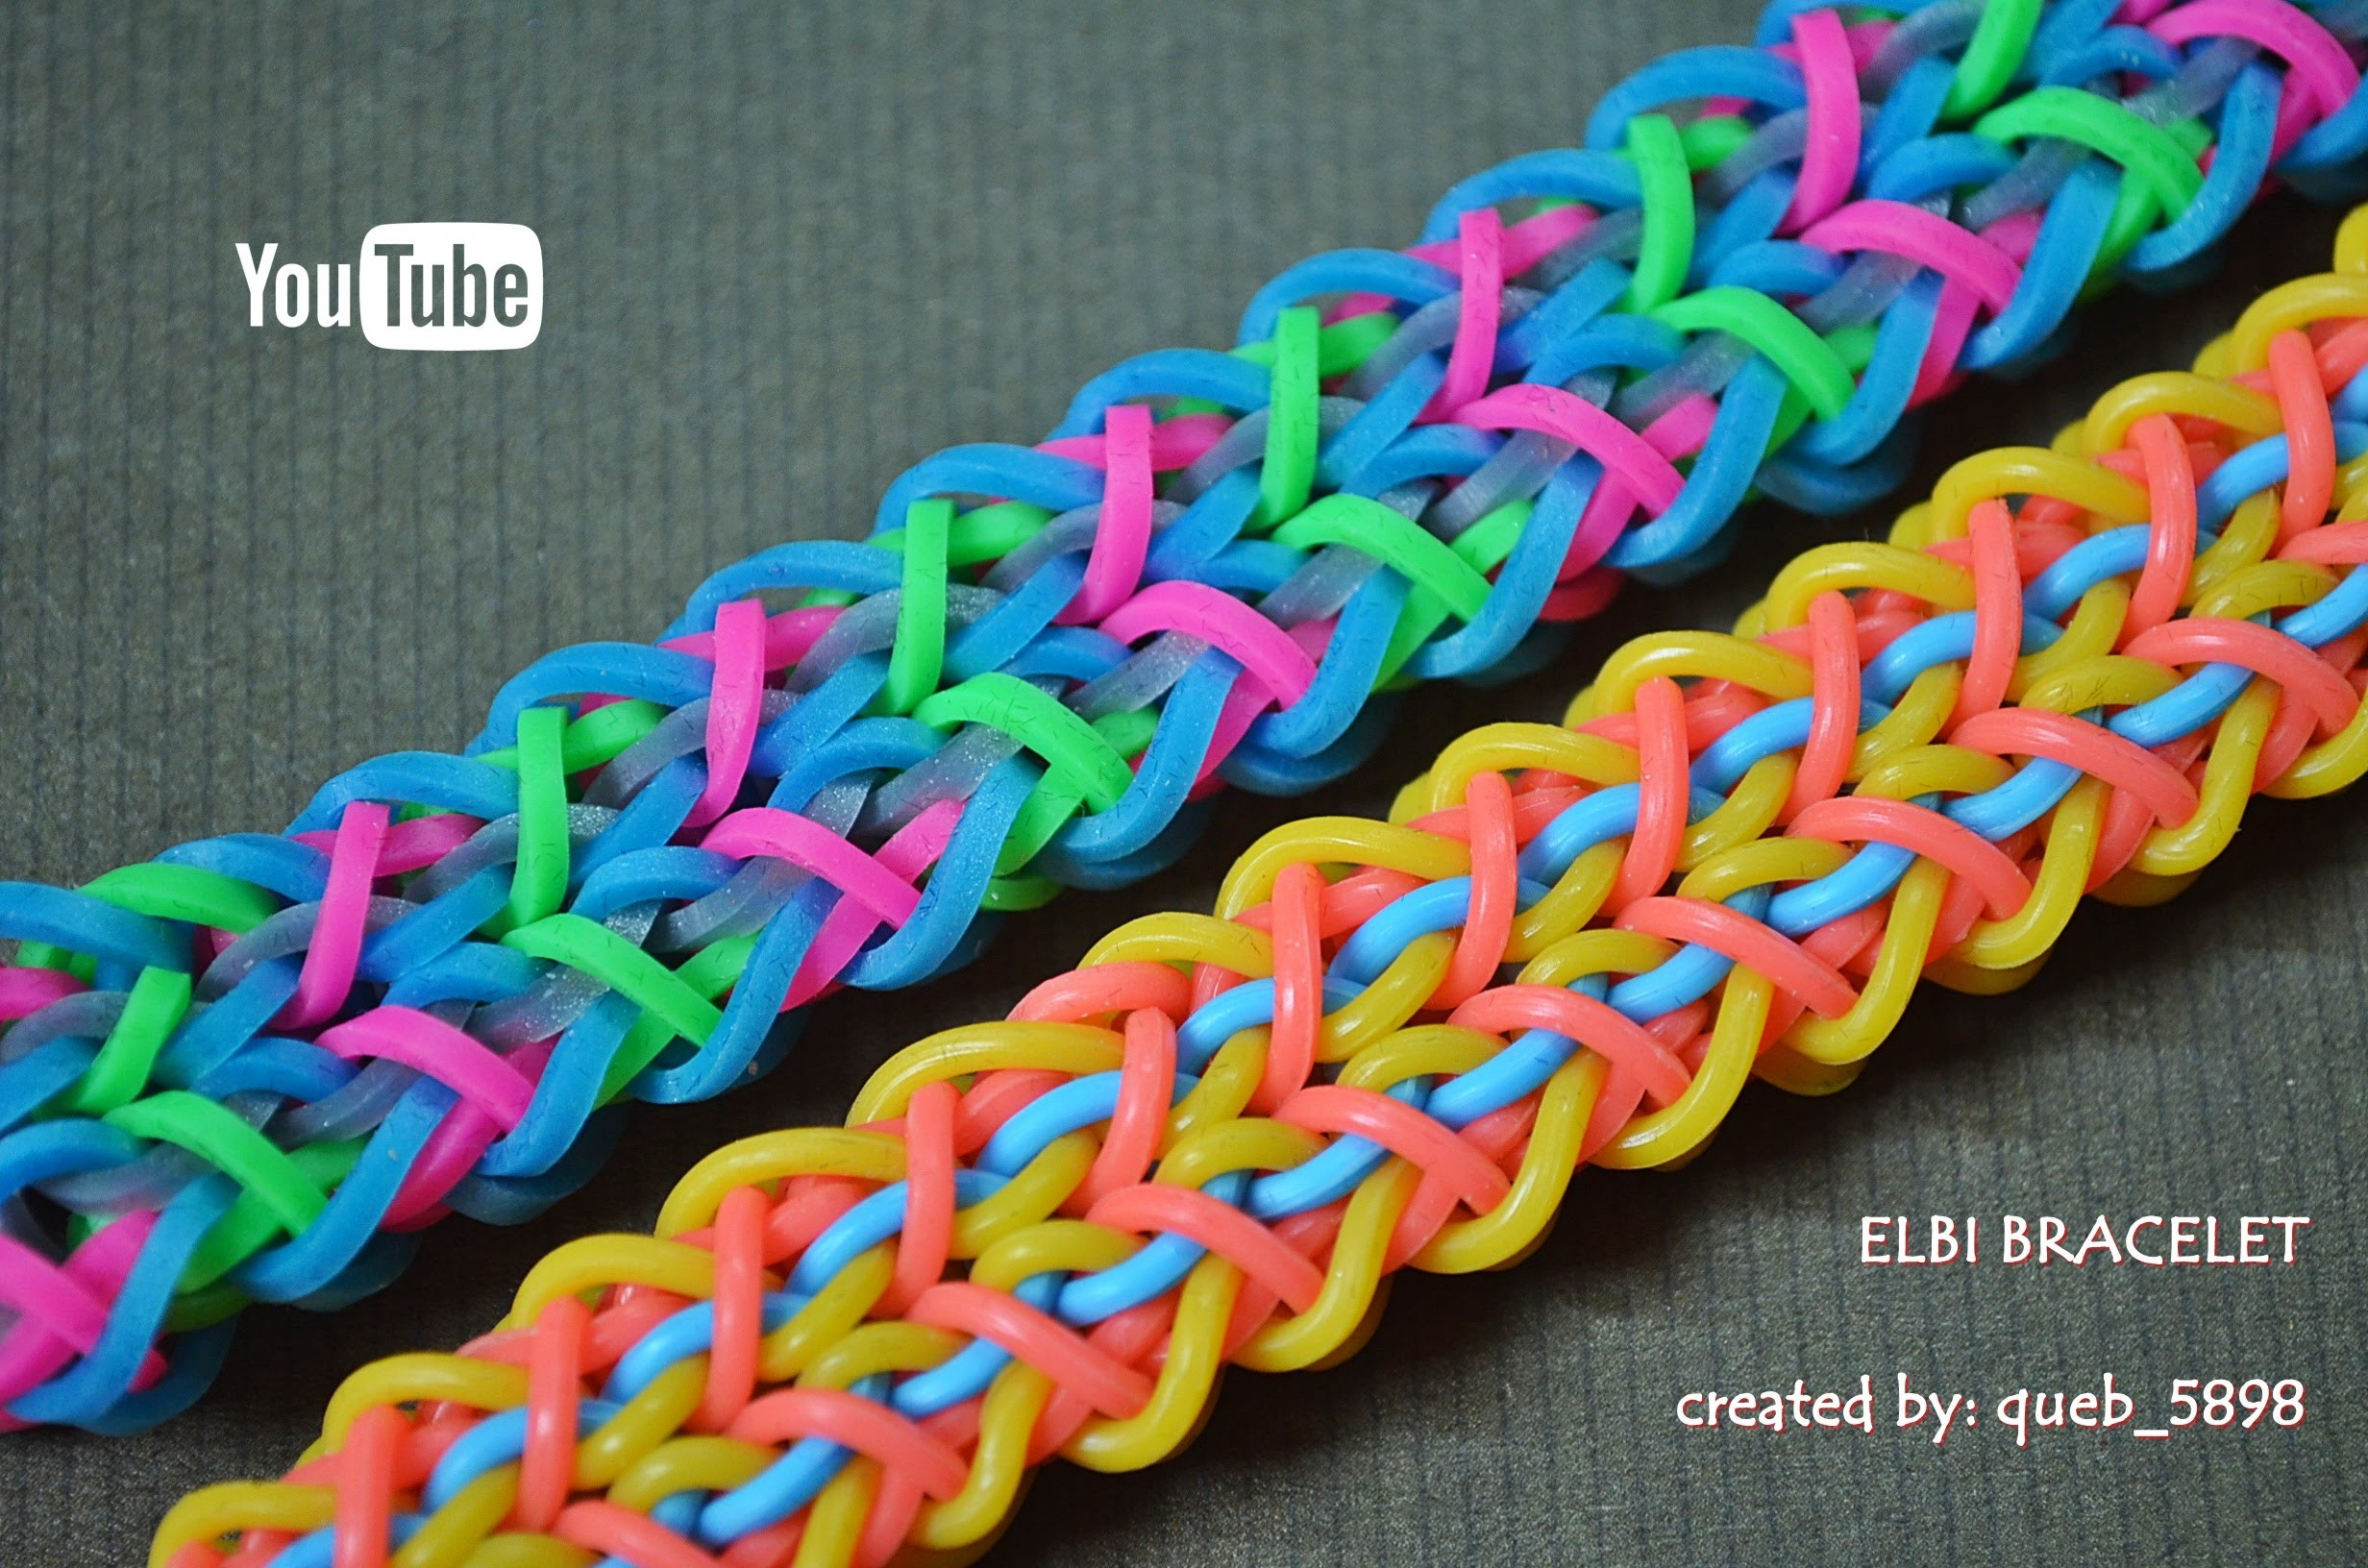 ELBI BRACELET HOOK ONLY DESIGN TUTORIAL